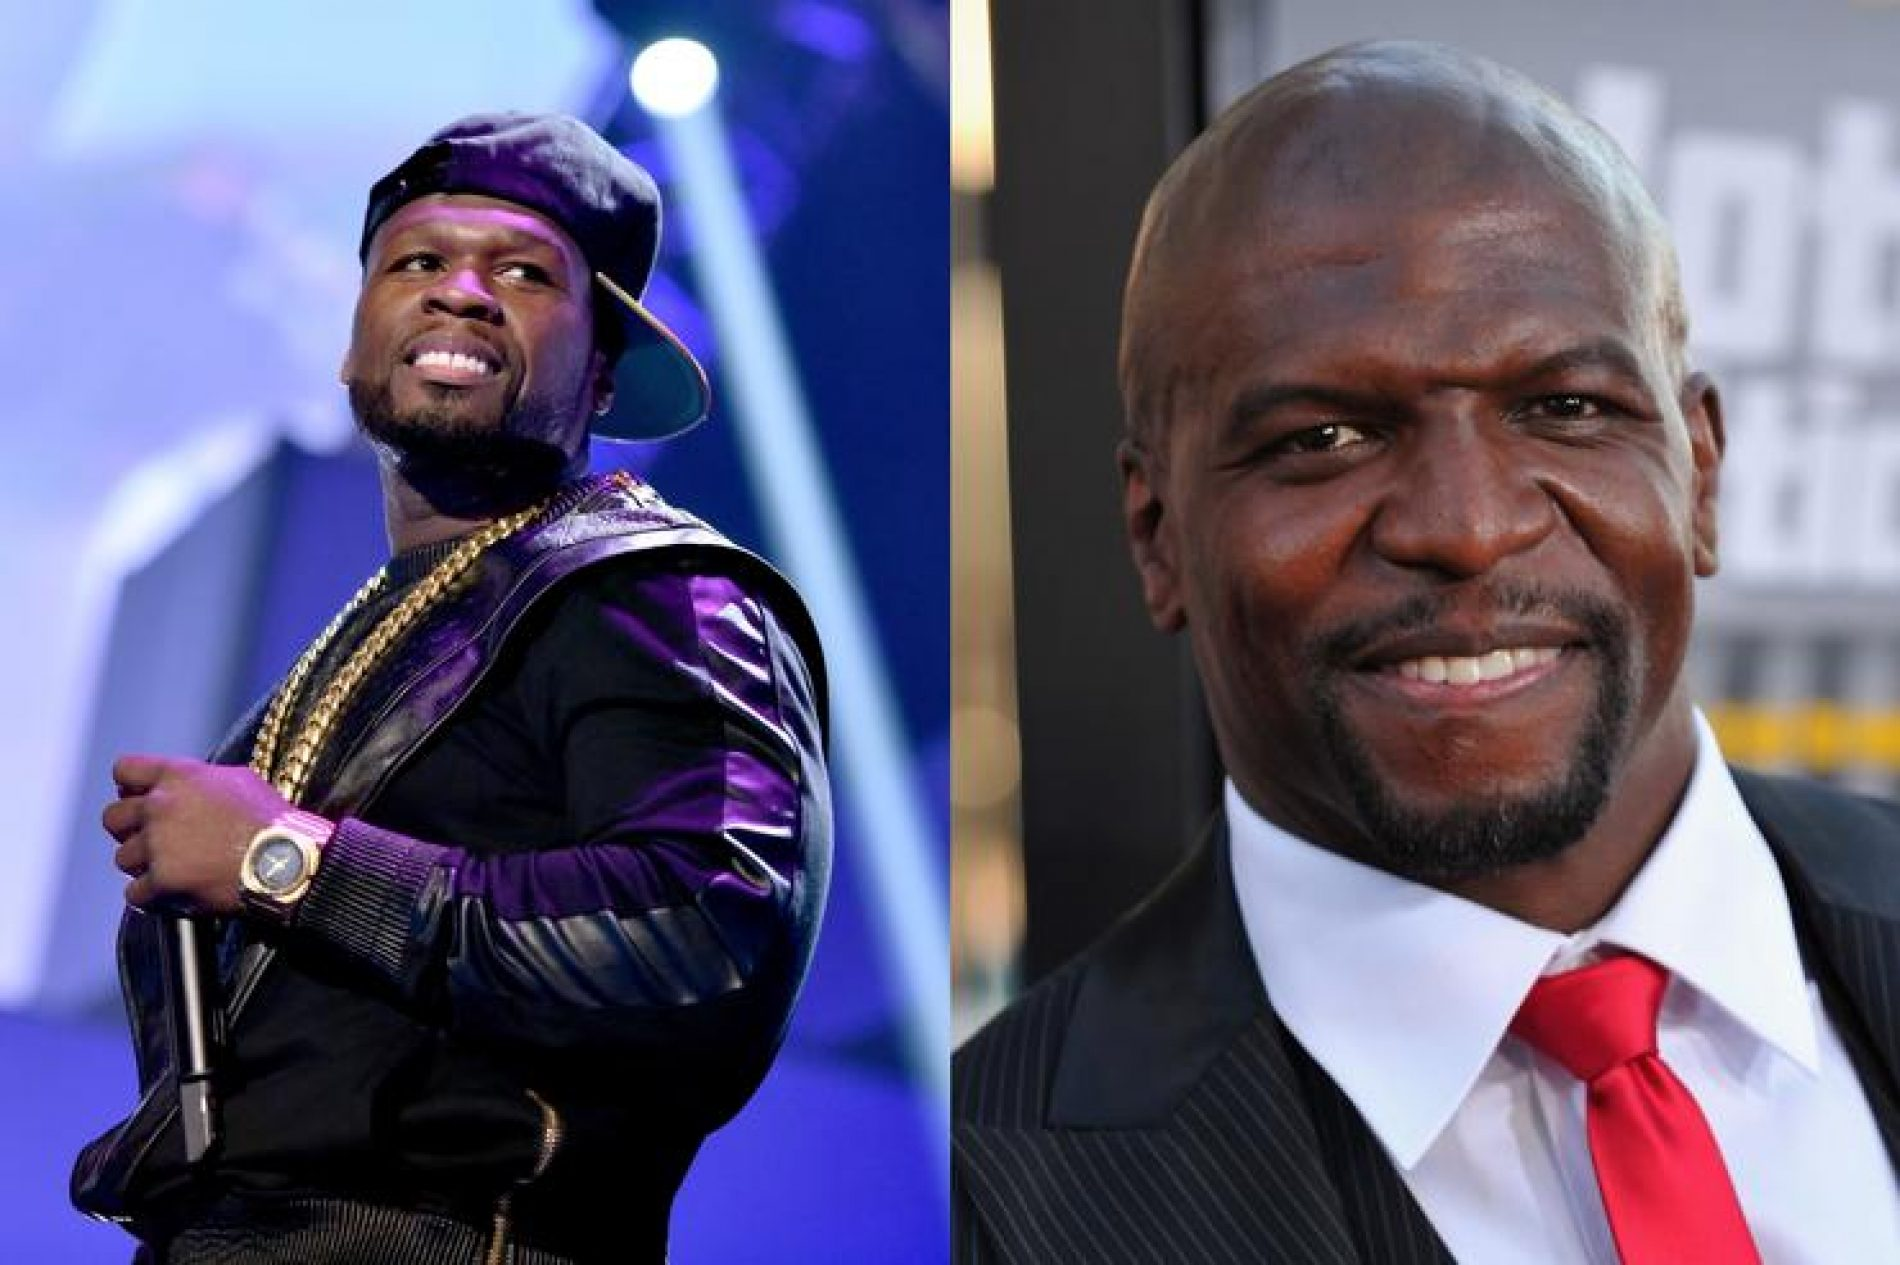 50 Cent mocks Terry Crews over his sexual assault